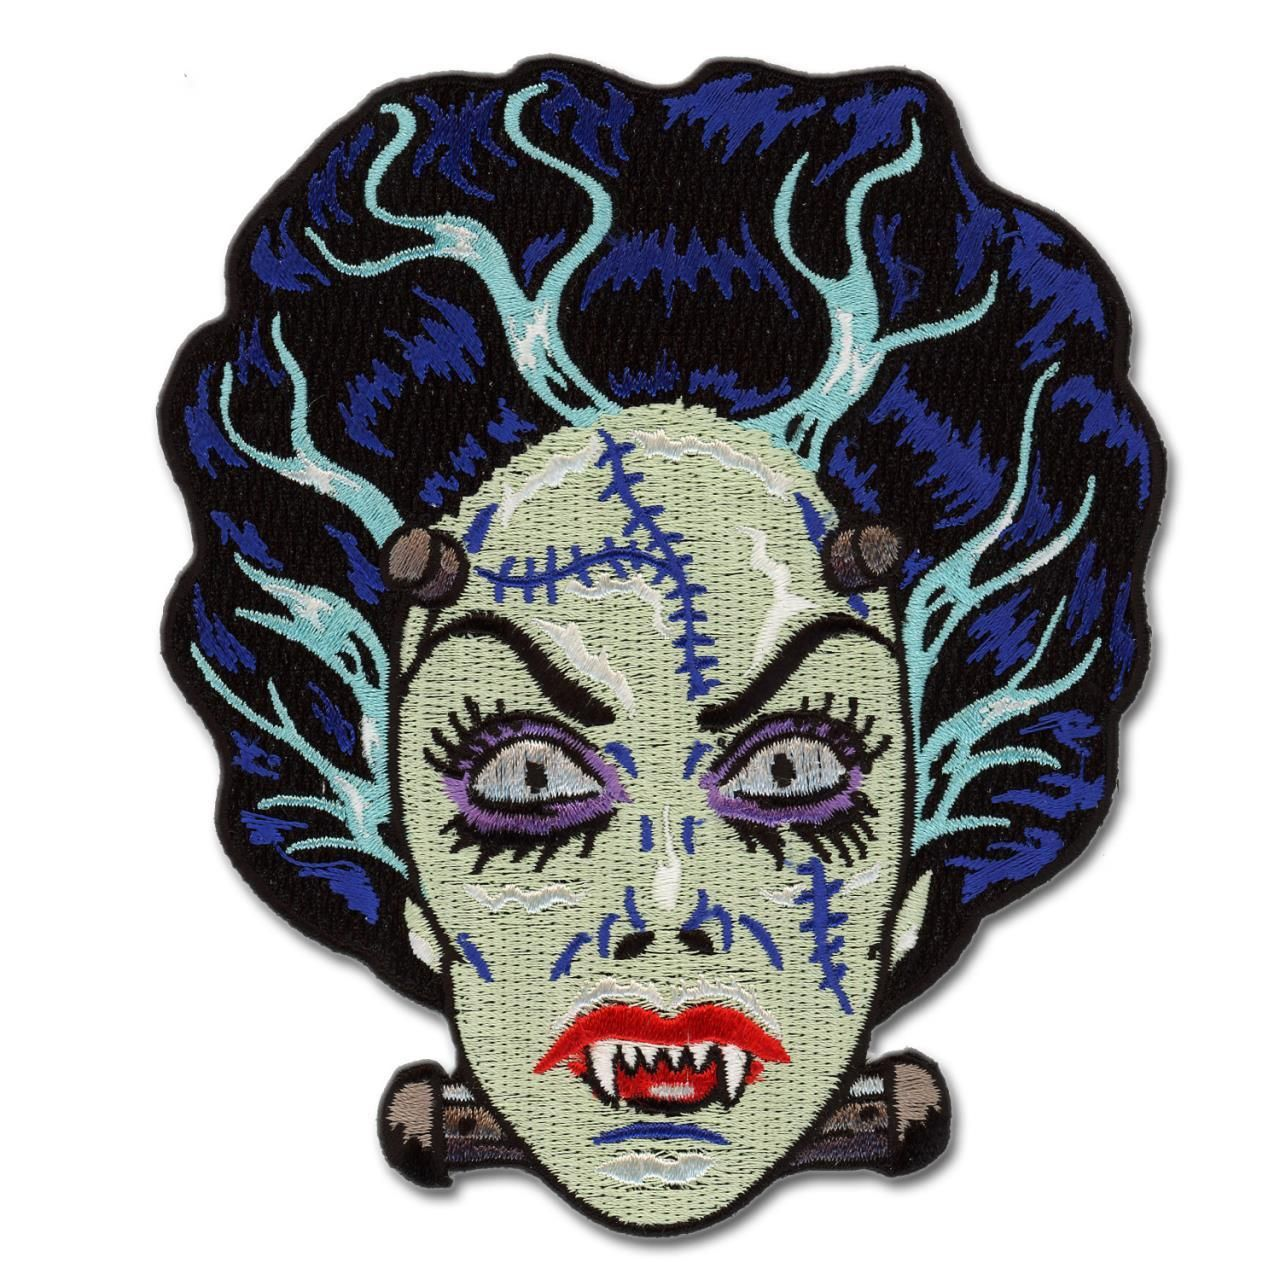 FISH FACE FREAK PATCH EMBROIDERED SEW ON IRON ON PATCH BY RETRO-A-GO-GO